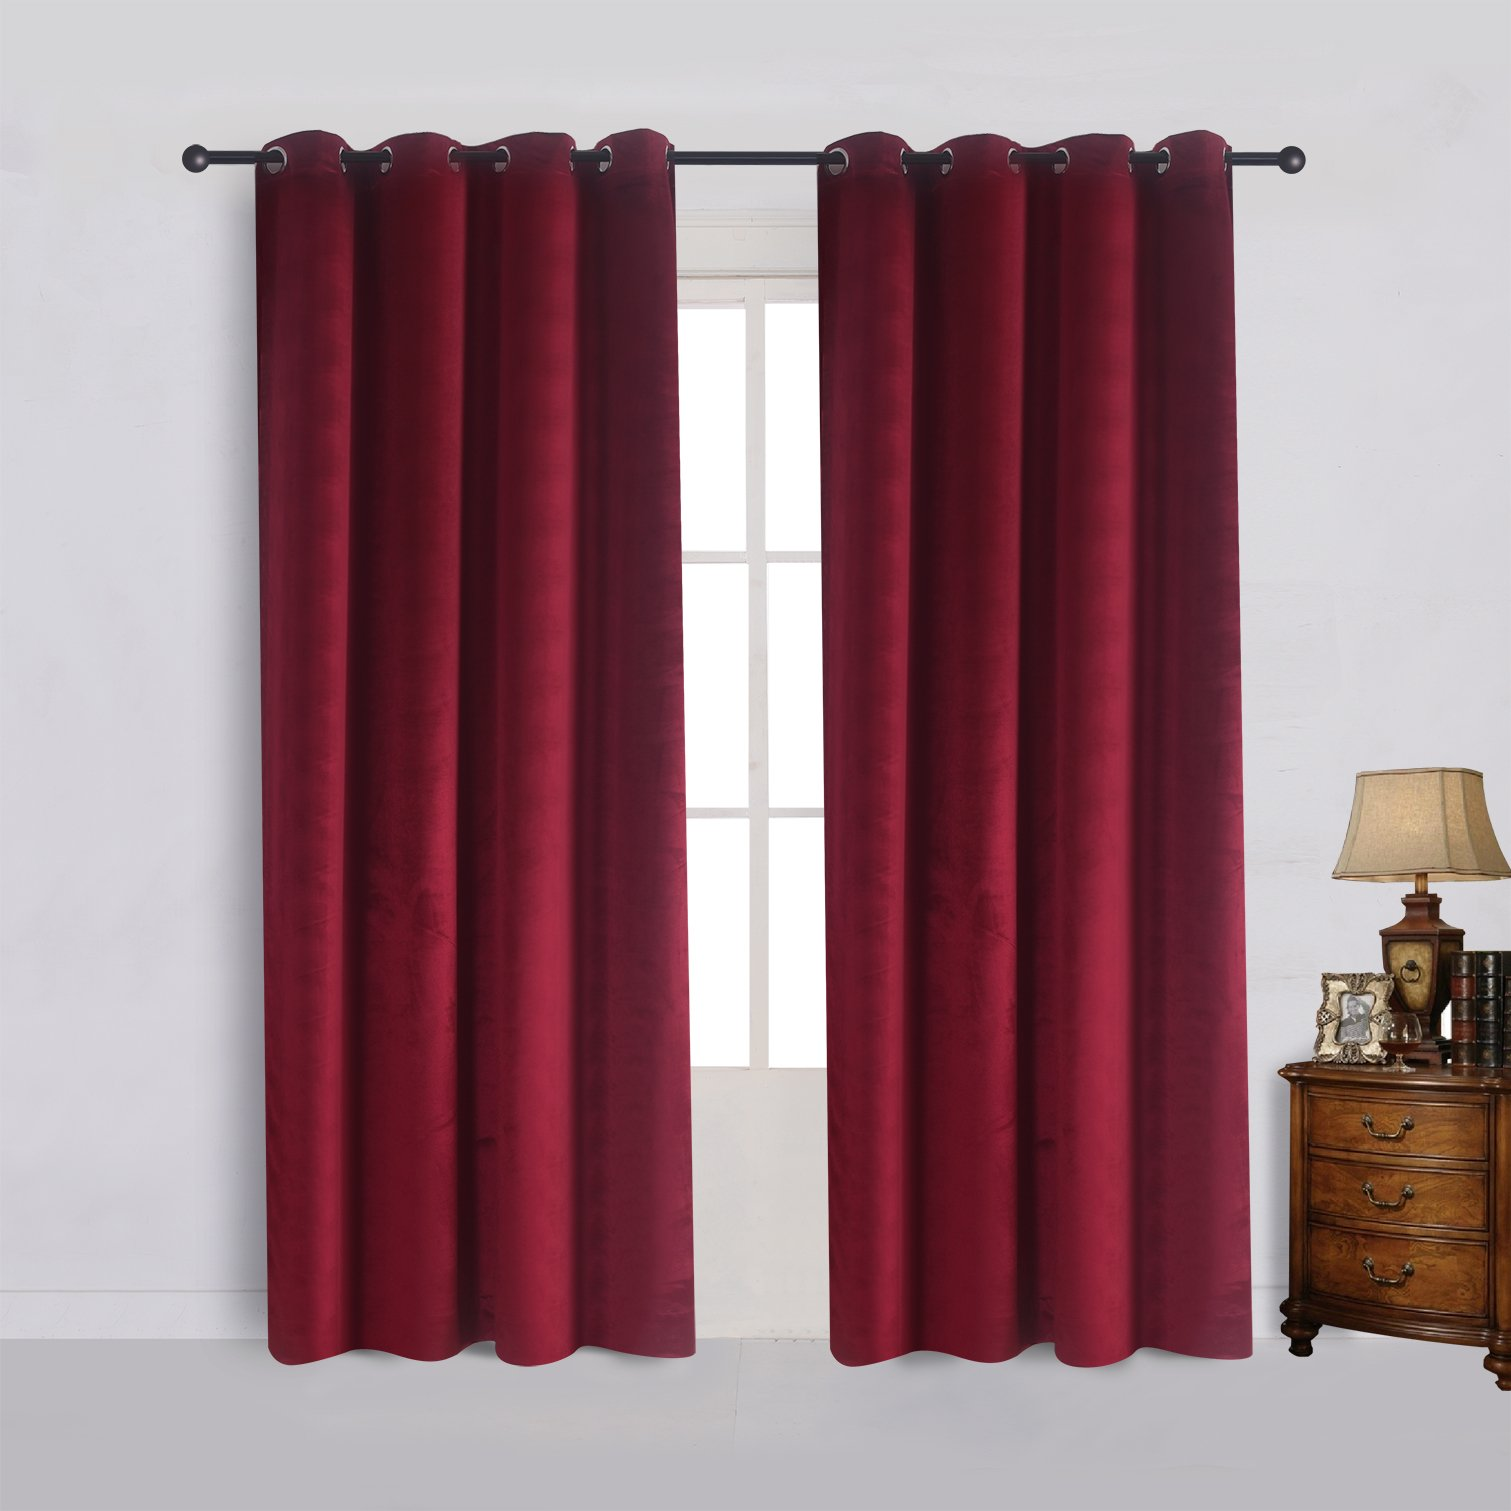 Cherry Home Set of 2 Velvet Room Darkening Blackout Curtain Panel Drapes Drapery 52 Inch Wide By 96 Inch Length with Grommet, Burgundy(2 panels)Theater  Bedroom  Living Room  Hotel